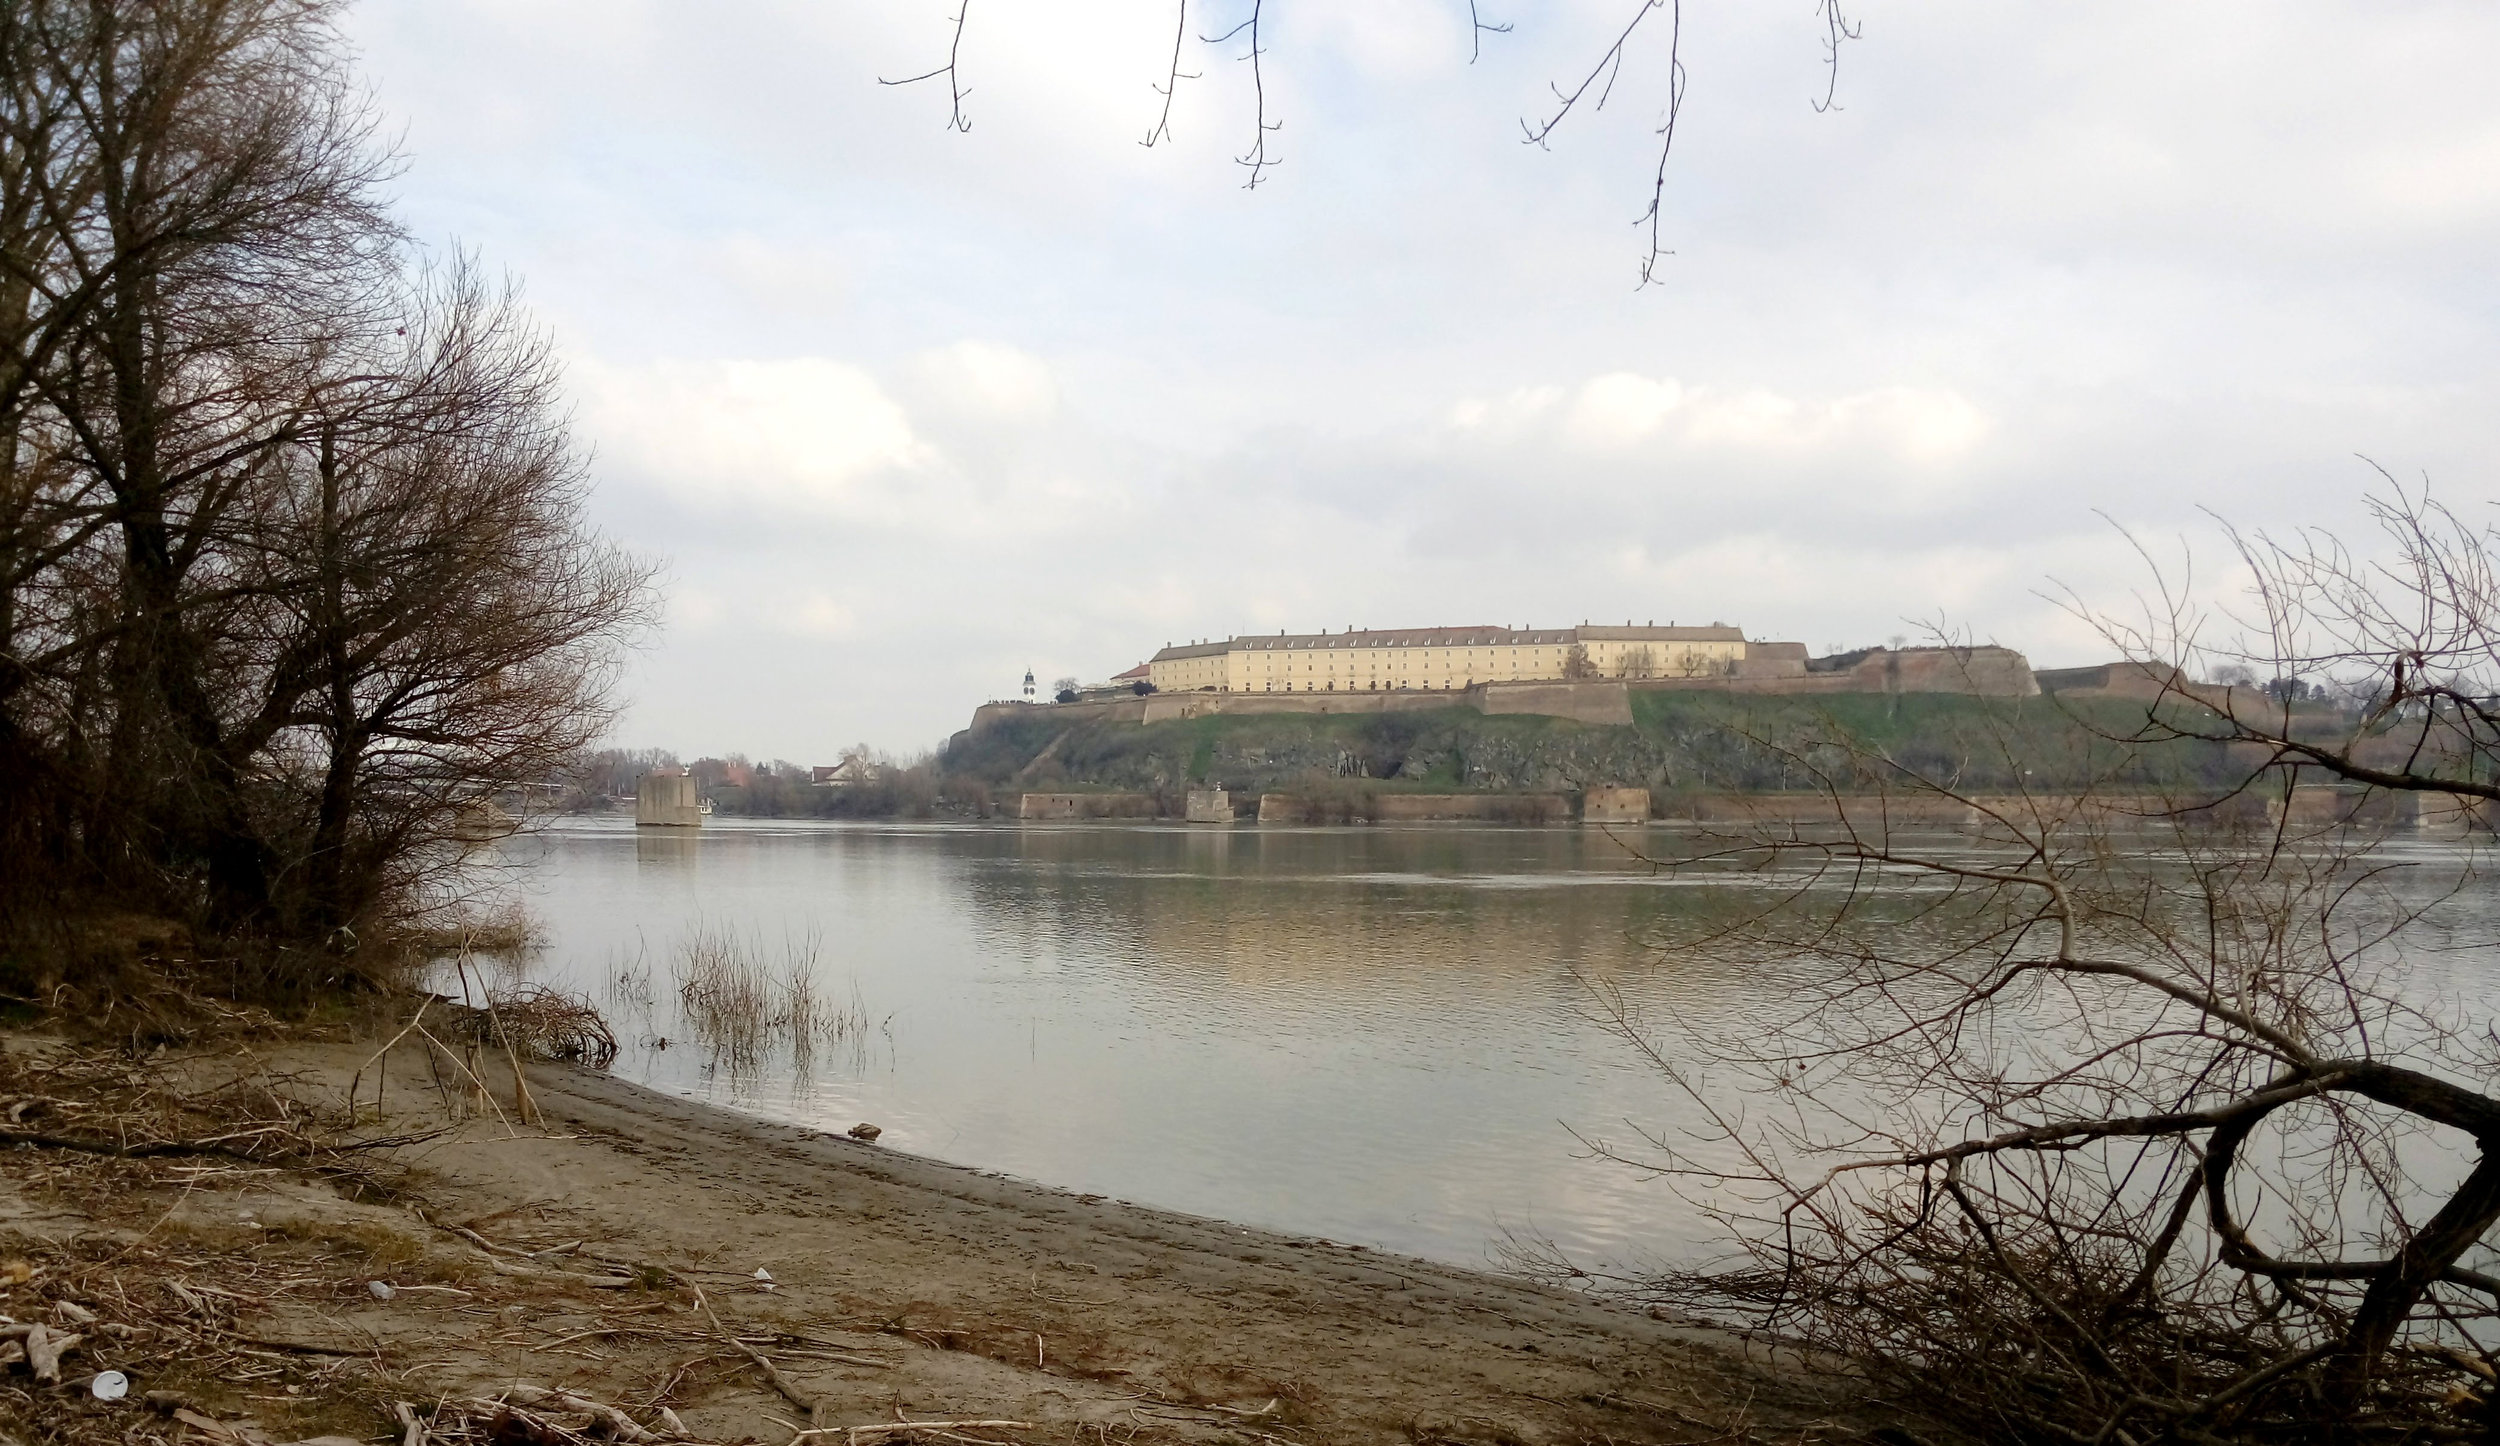 The Danube with the Petrovaradin Fortress on the opposite bank.